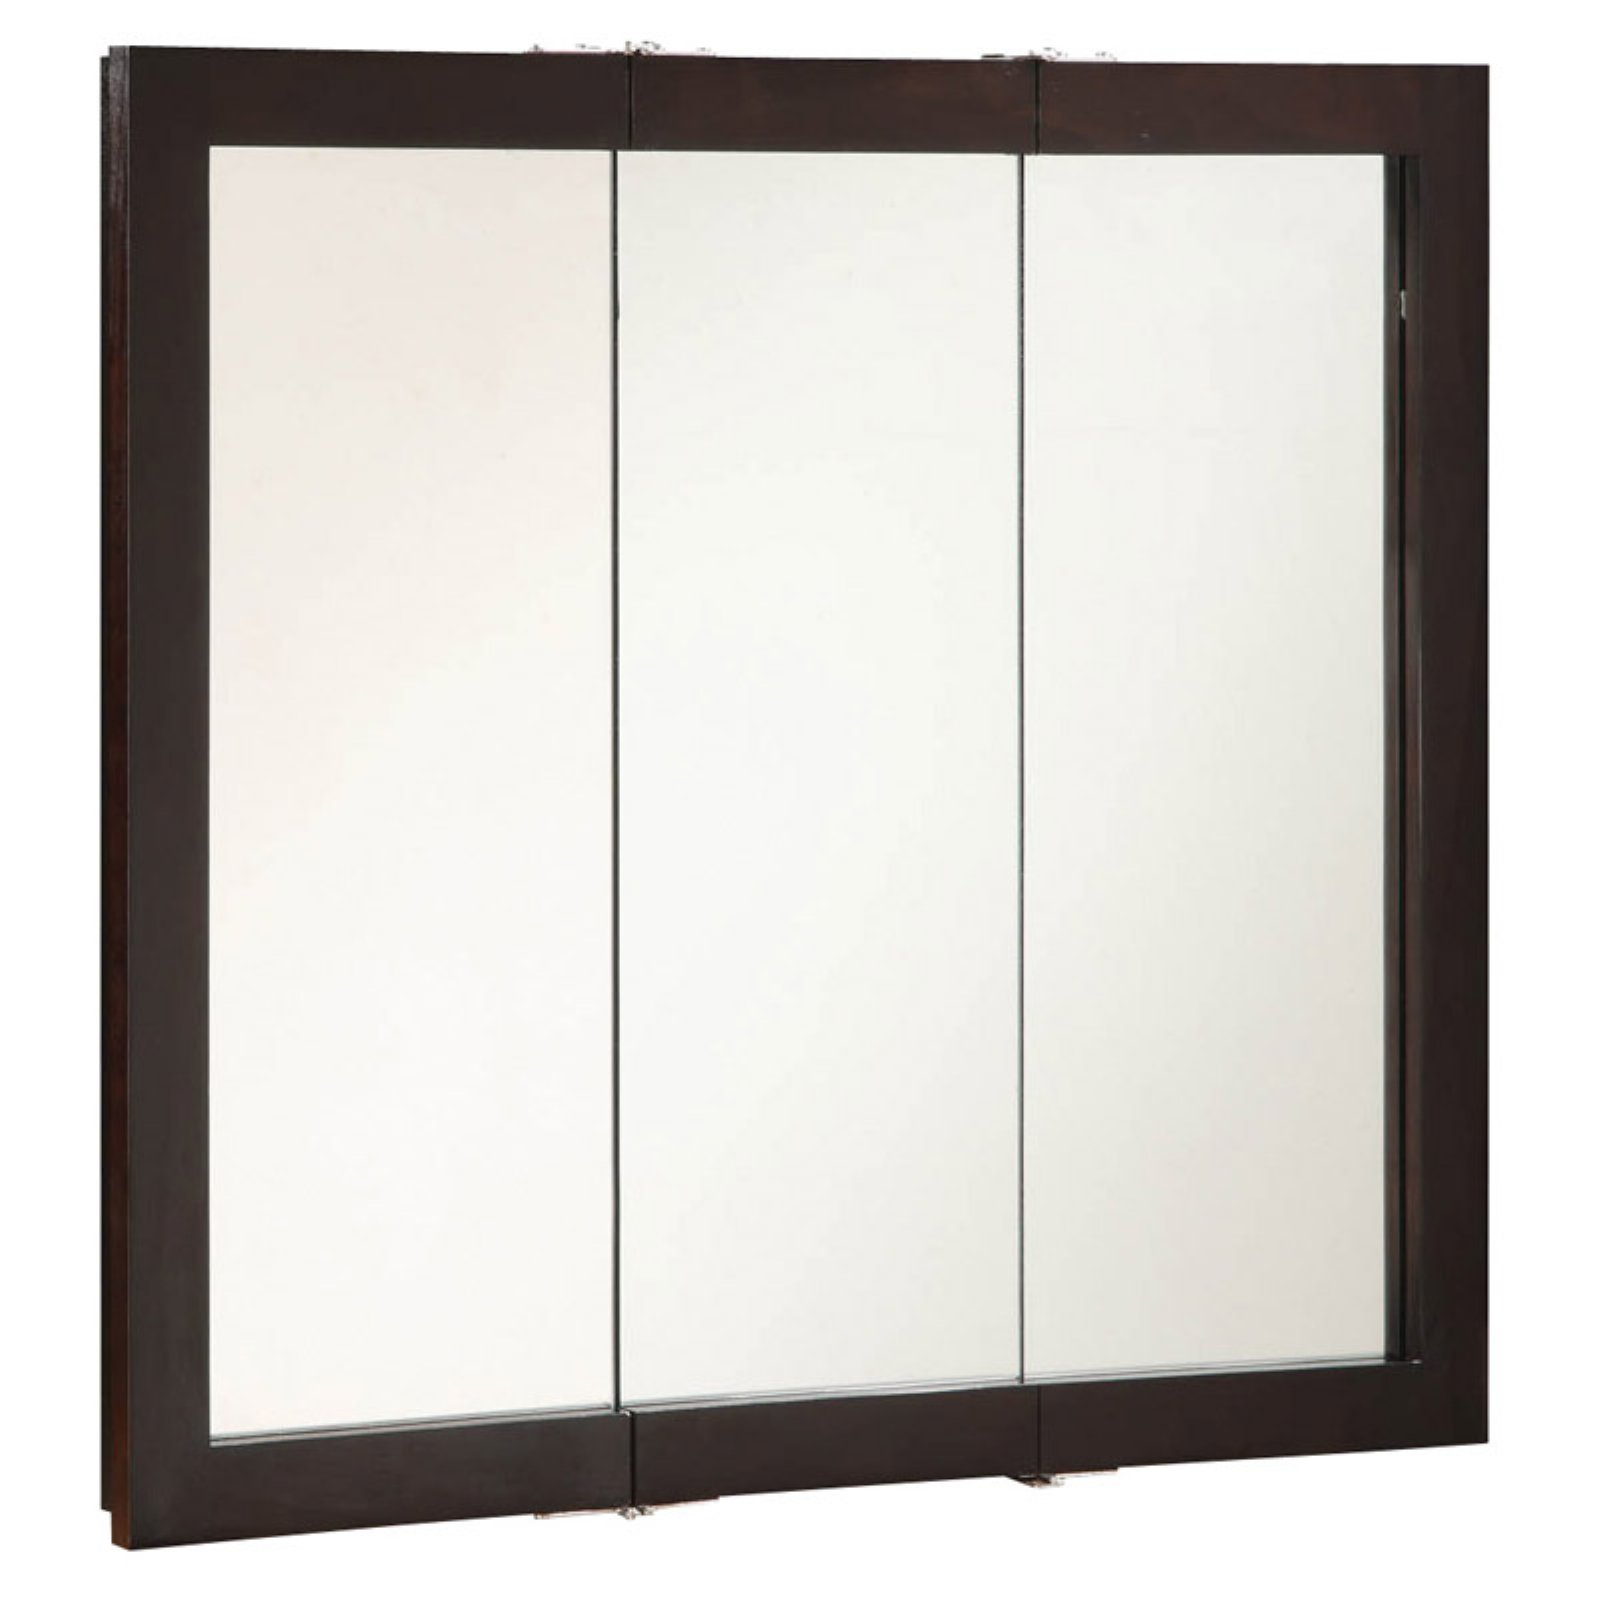 Design House Ventura Tri-View Medicine Cabinet Mirror by Design House